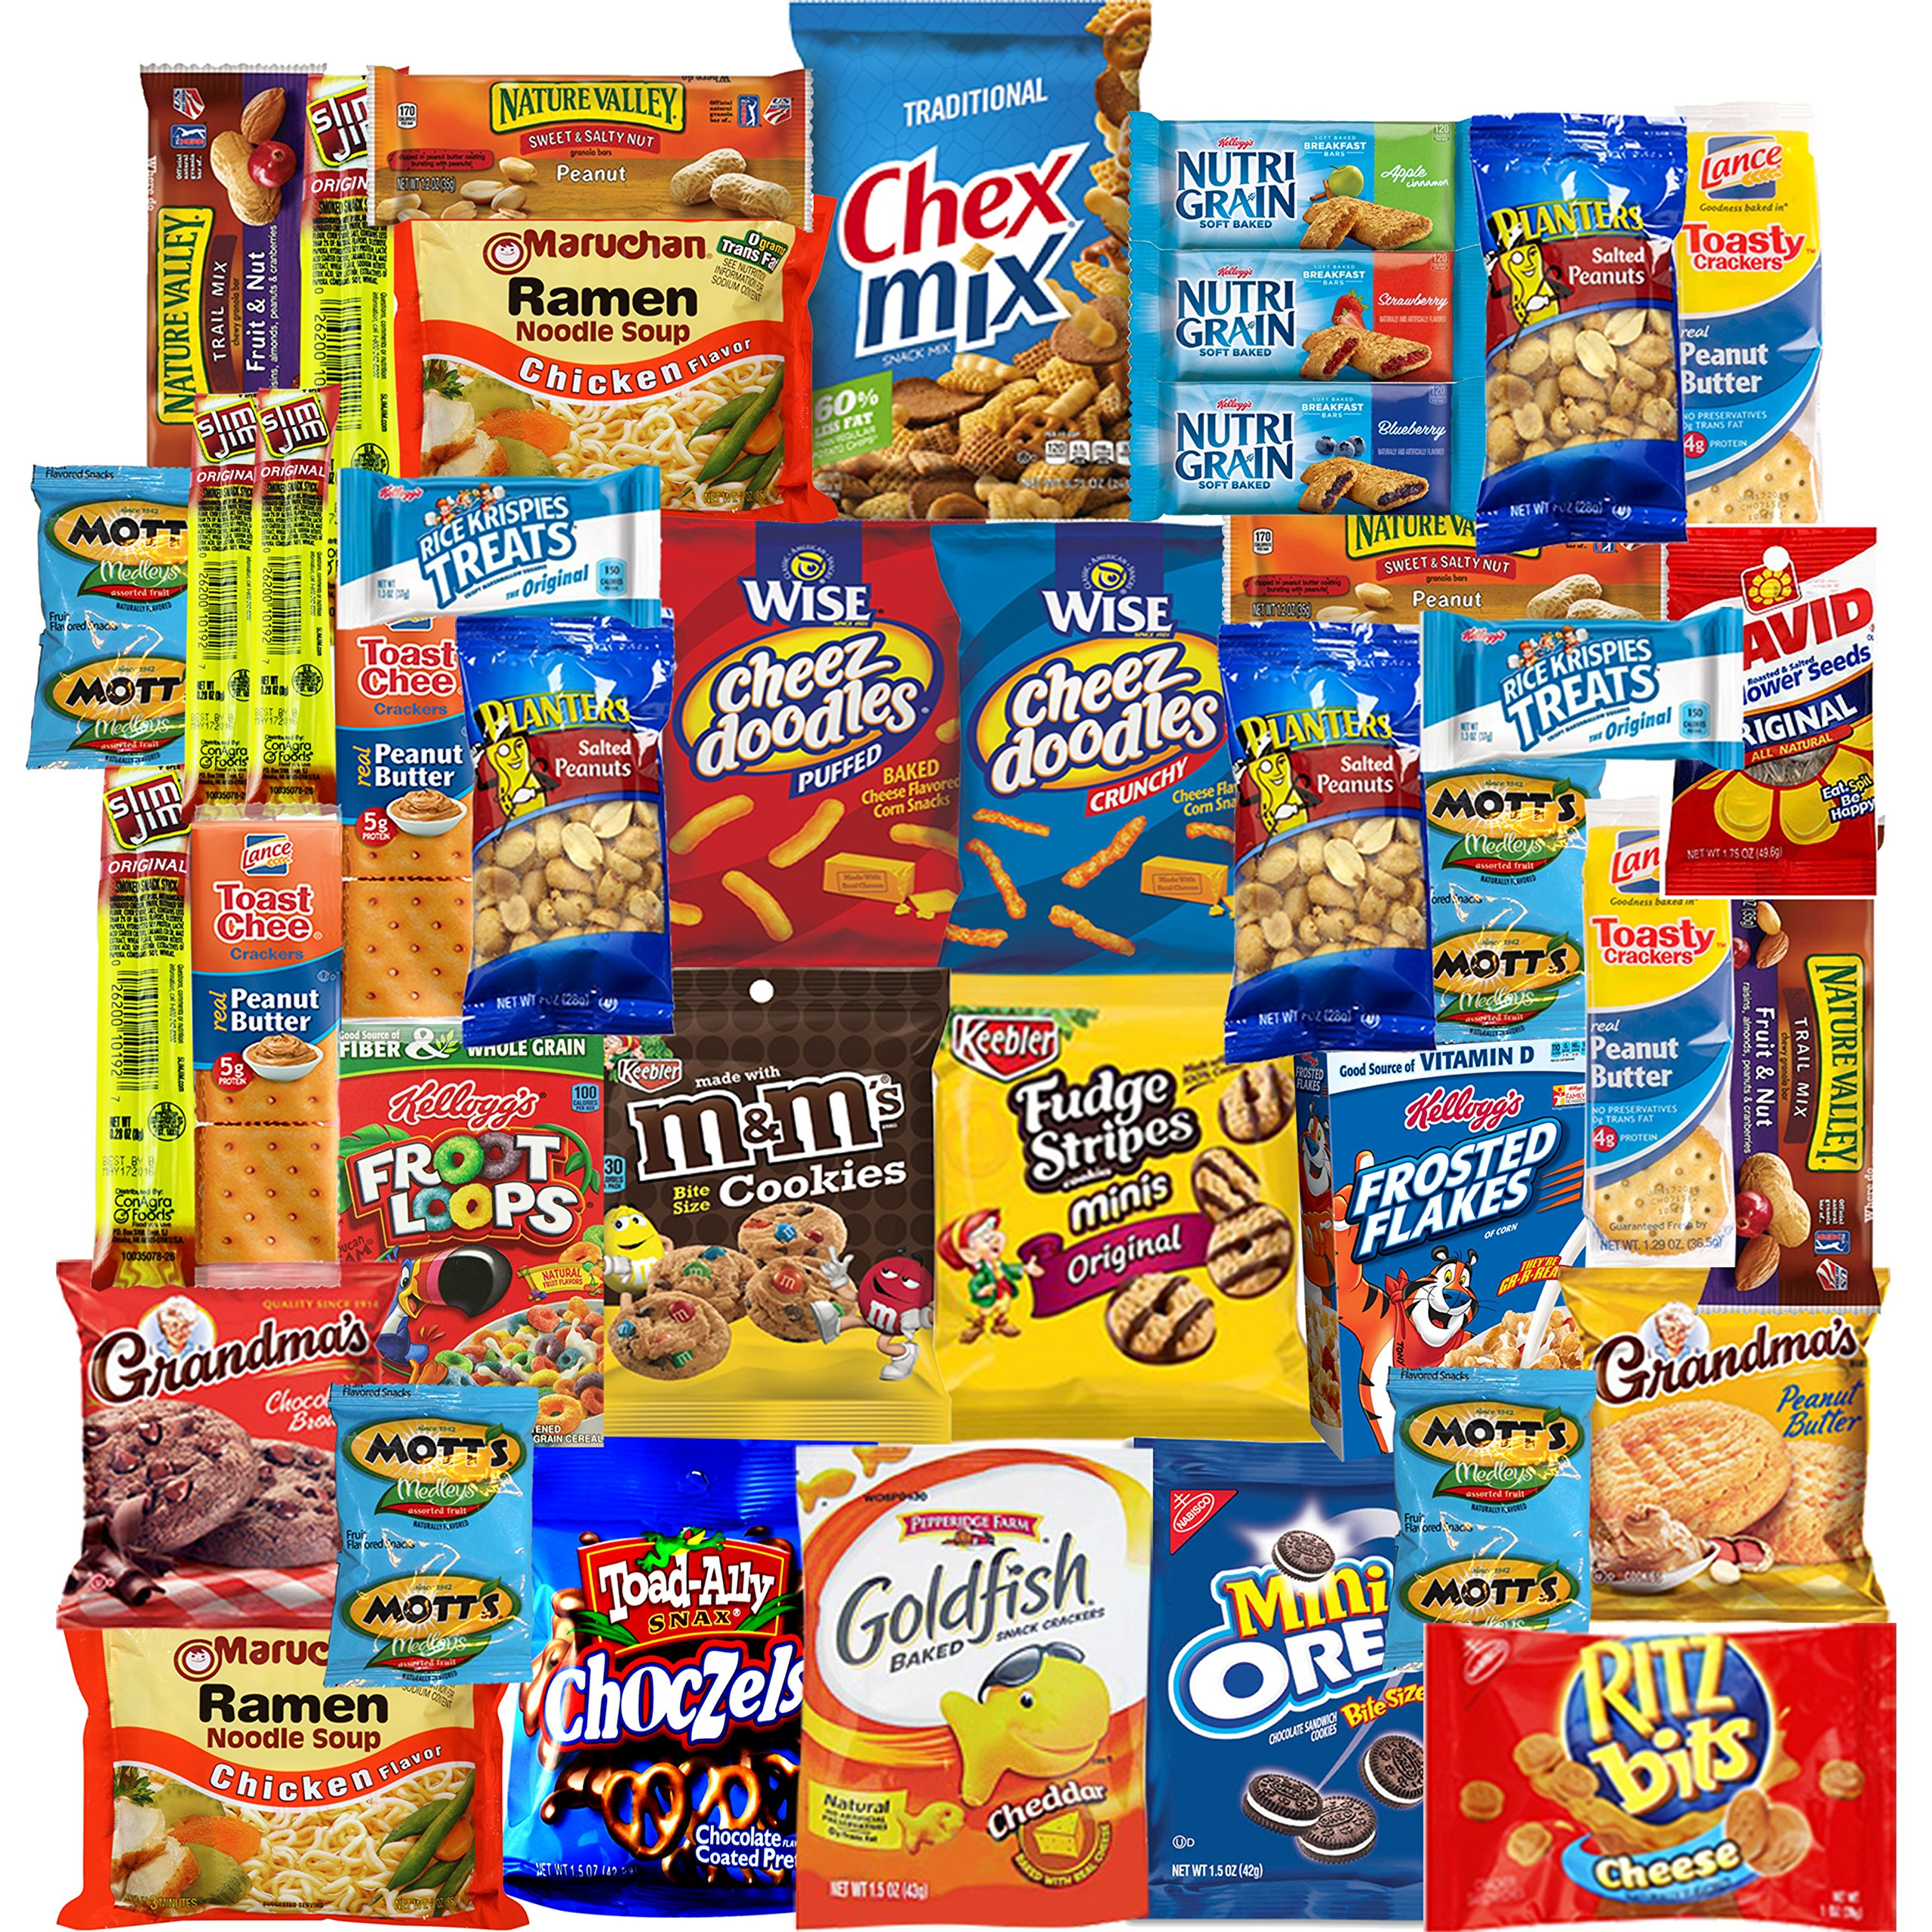 Ultimate Care Package Includes Chips, Cookies, Bars, Nuts & More (40 Count)